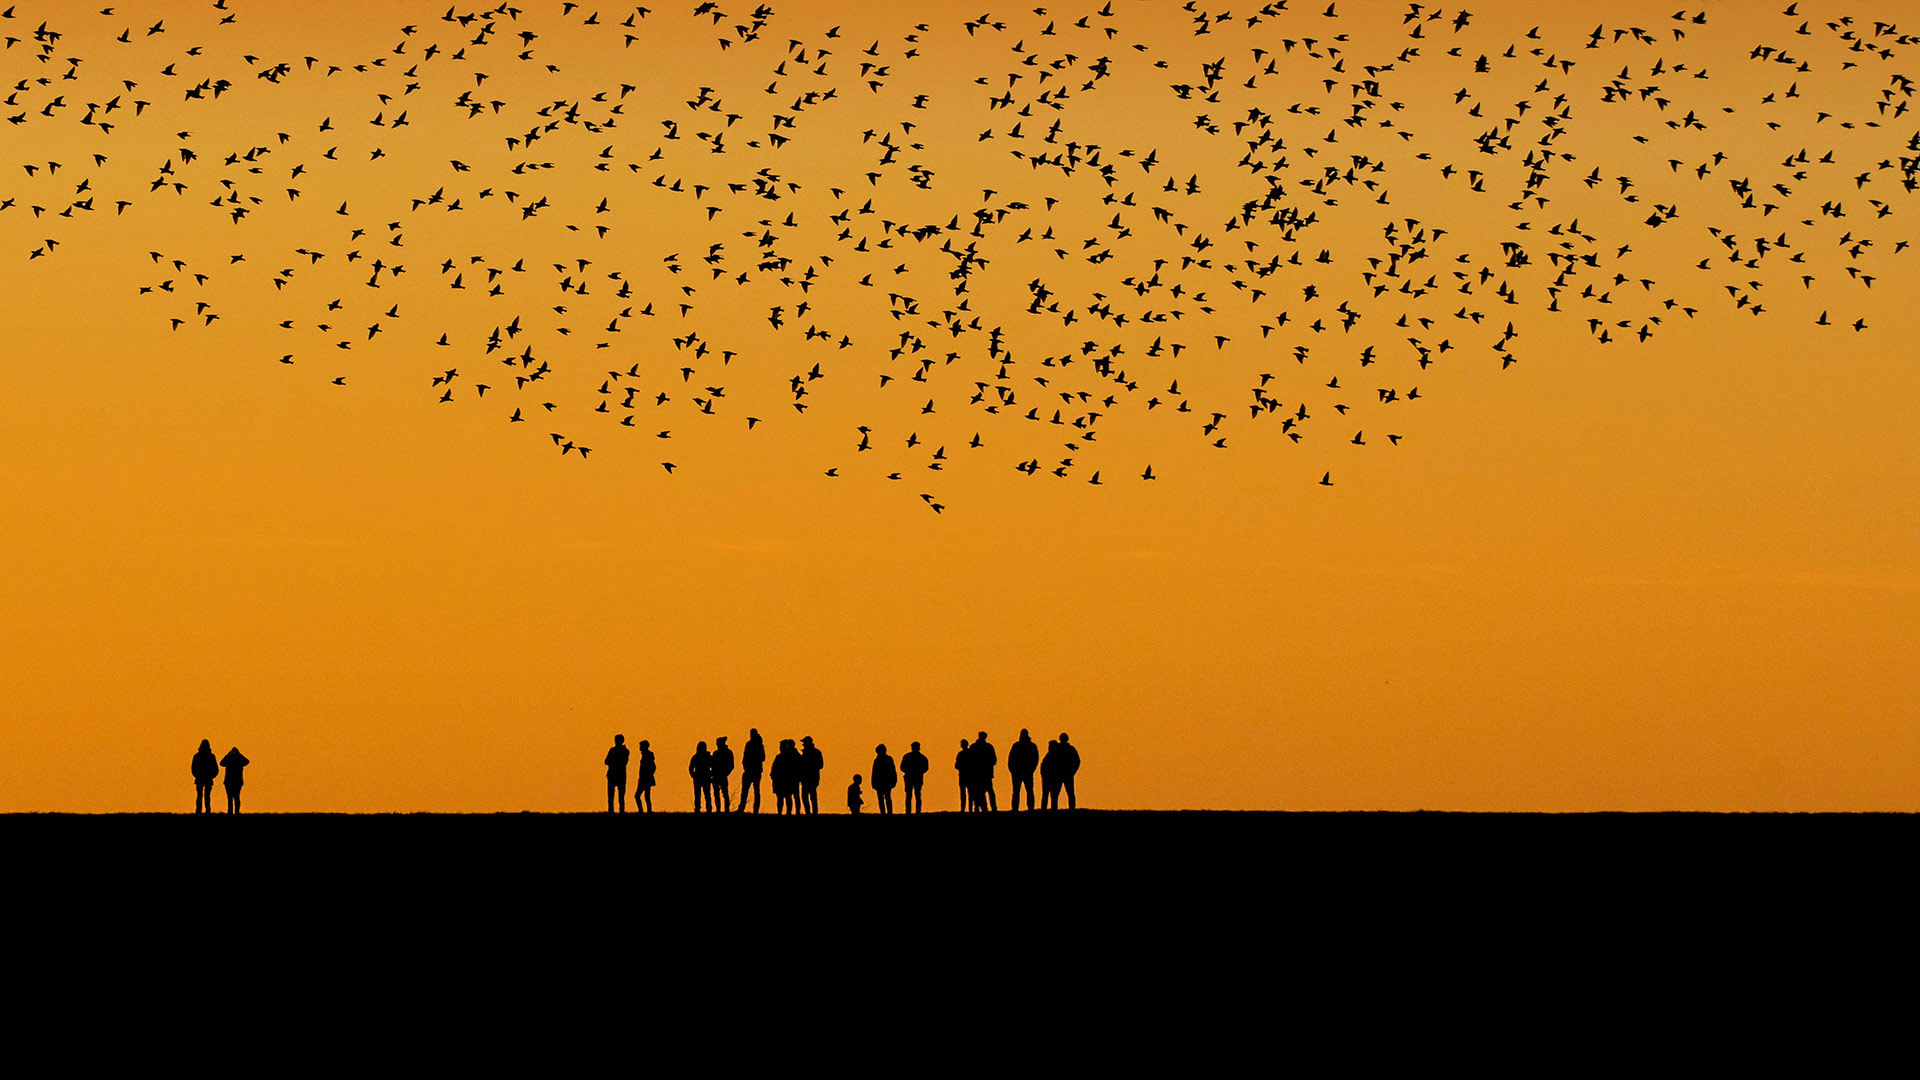 Starlings in the wetlands between Denmark and Germany (© Viking/Alamy)(Bing United States)